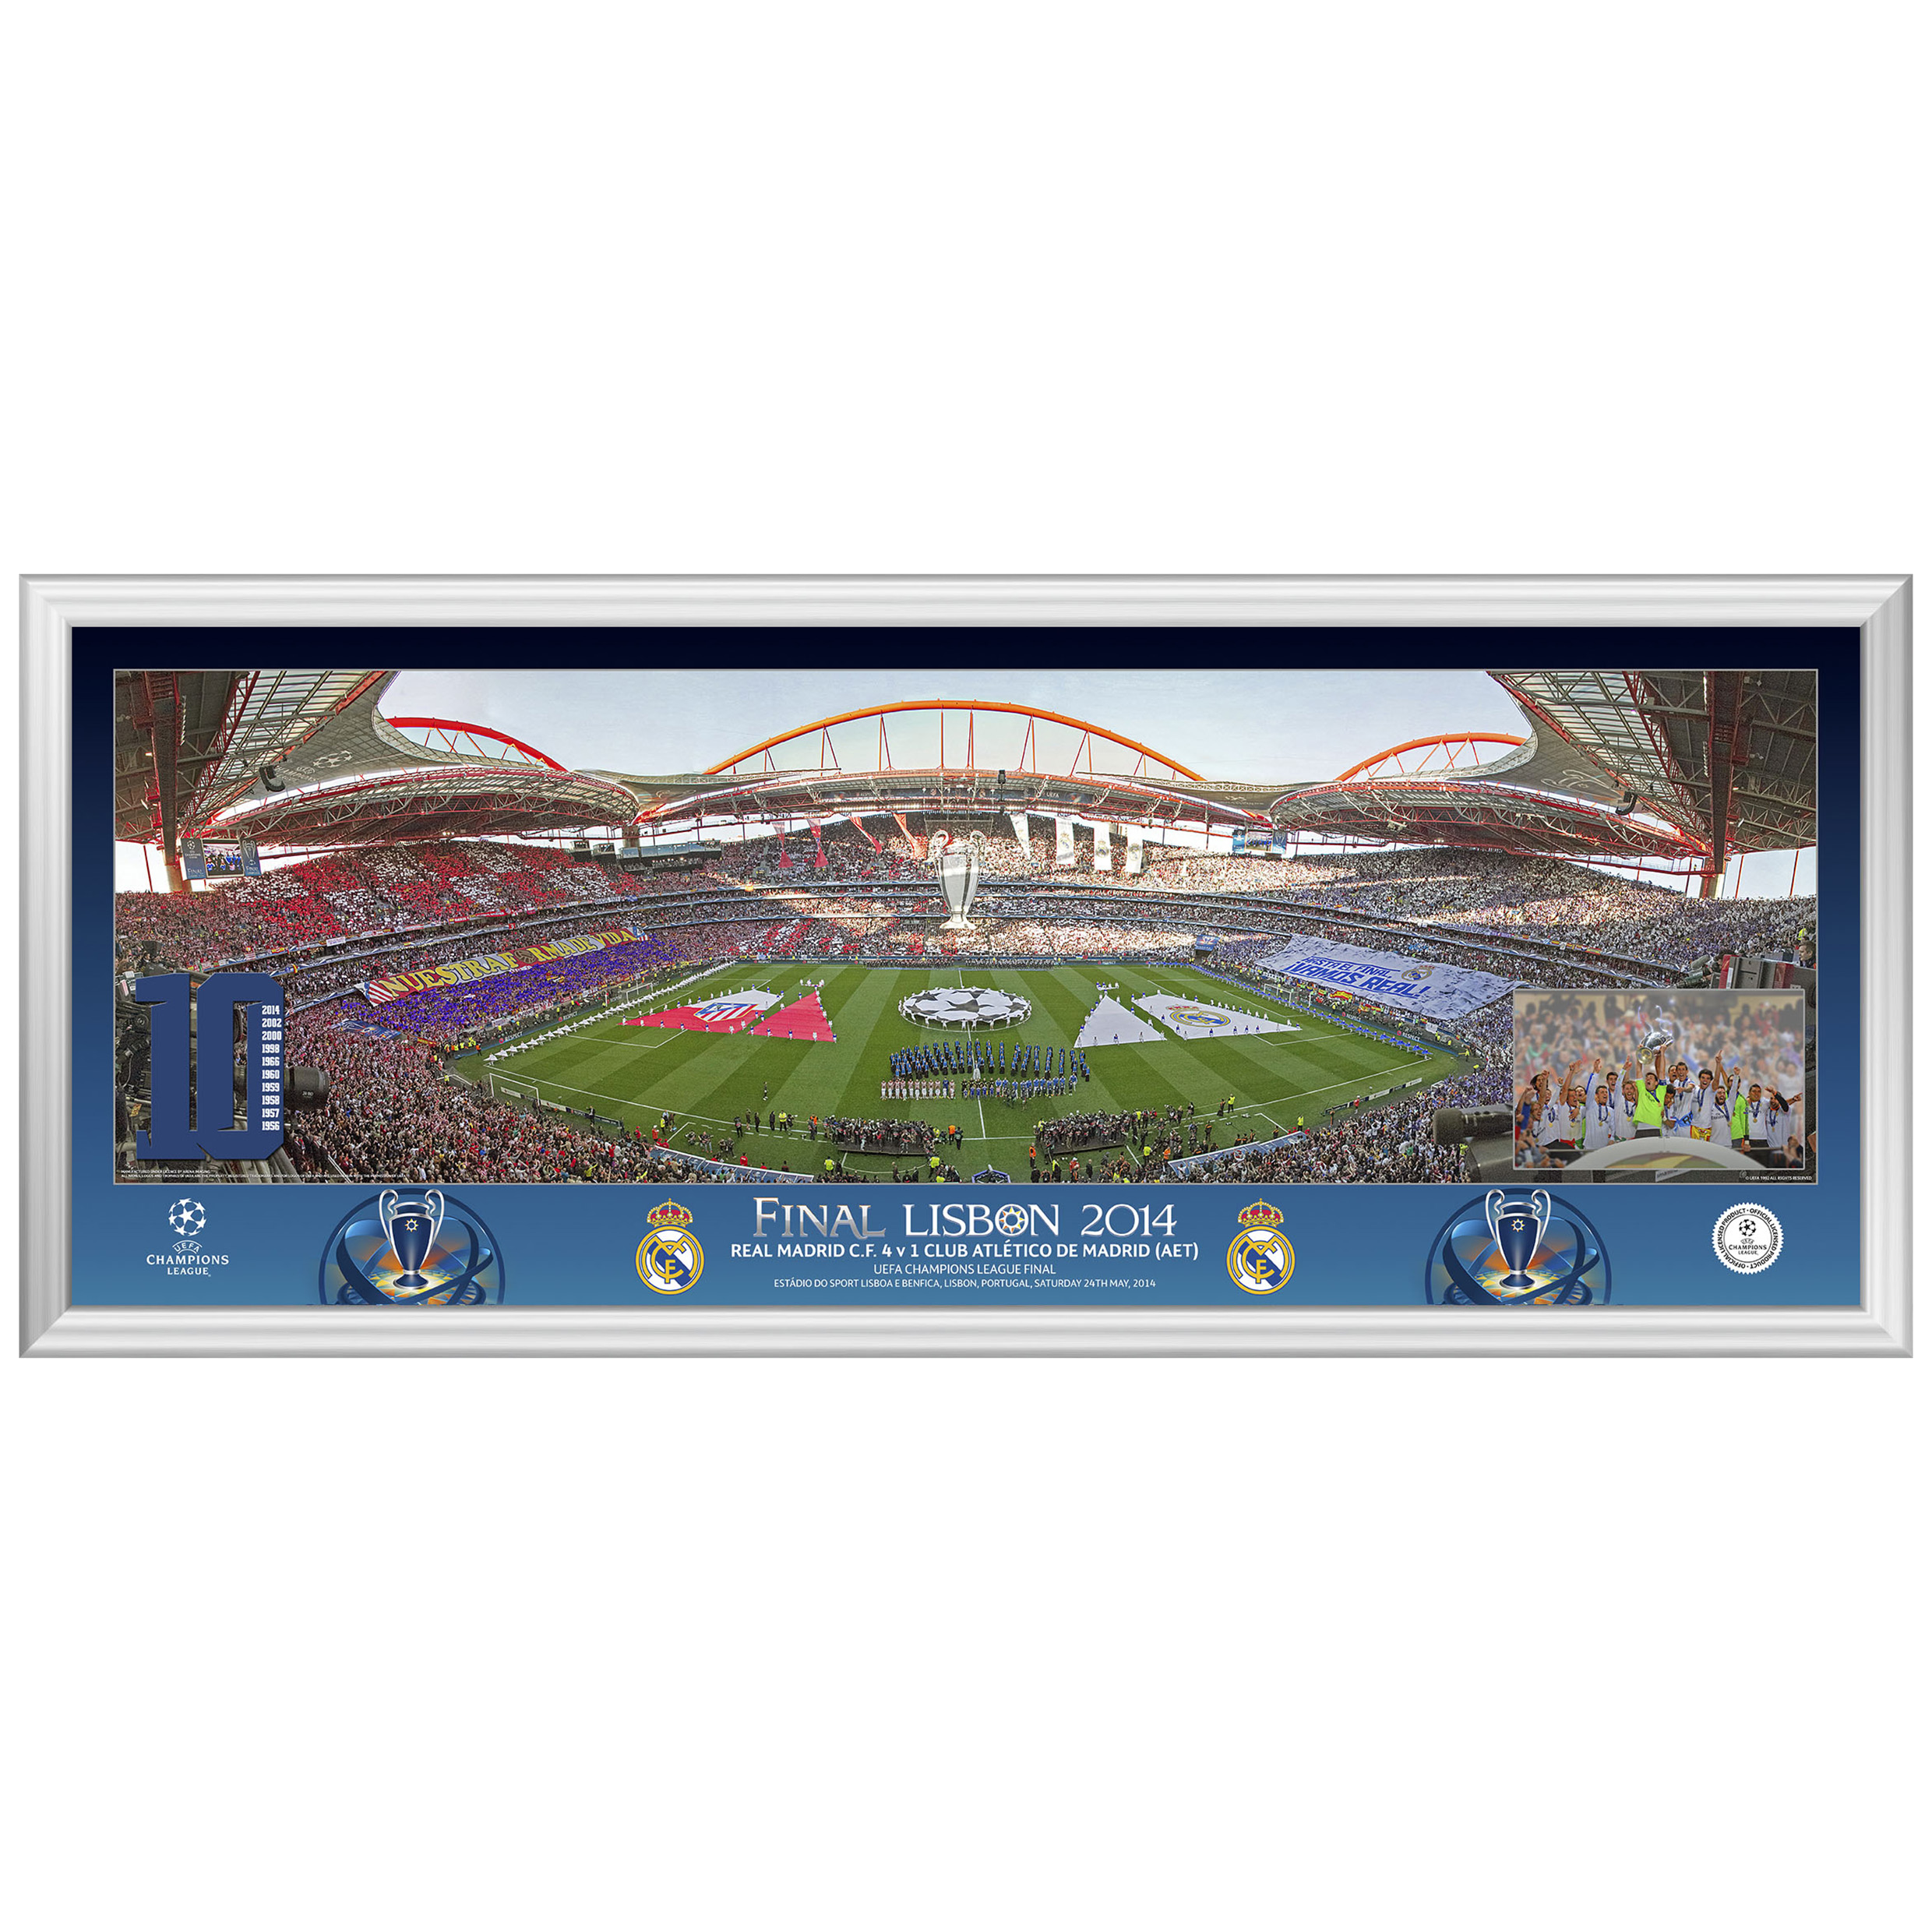 Real Madrid Champions League Final 2014 Line Up Panoramic Print - 30 x 12 Inch